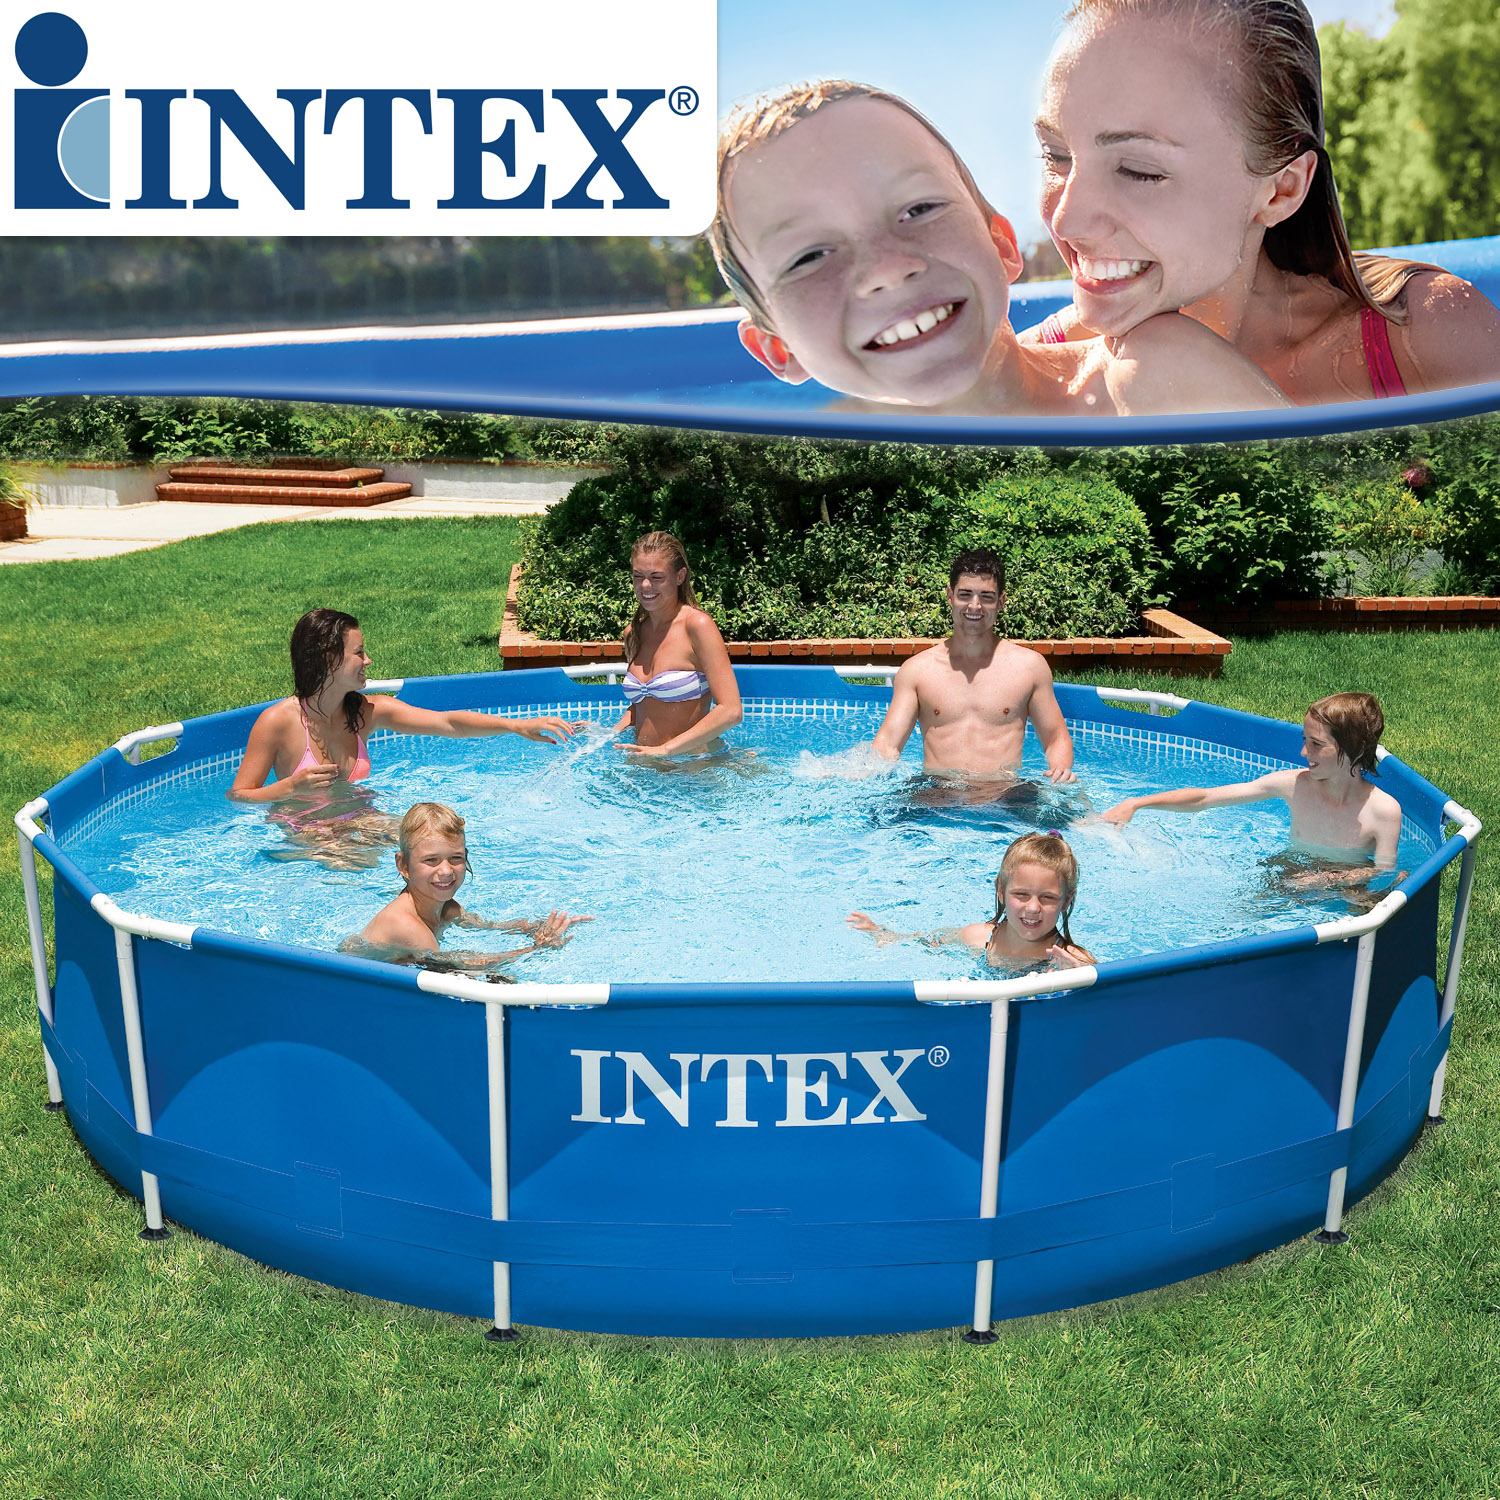 intex 366x76 swimming pool frame stahlwandbecken schwimmbecken schwimmbad 28210 ebay. Black Bedroom Furniture Sets. Home Design Ideas